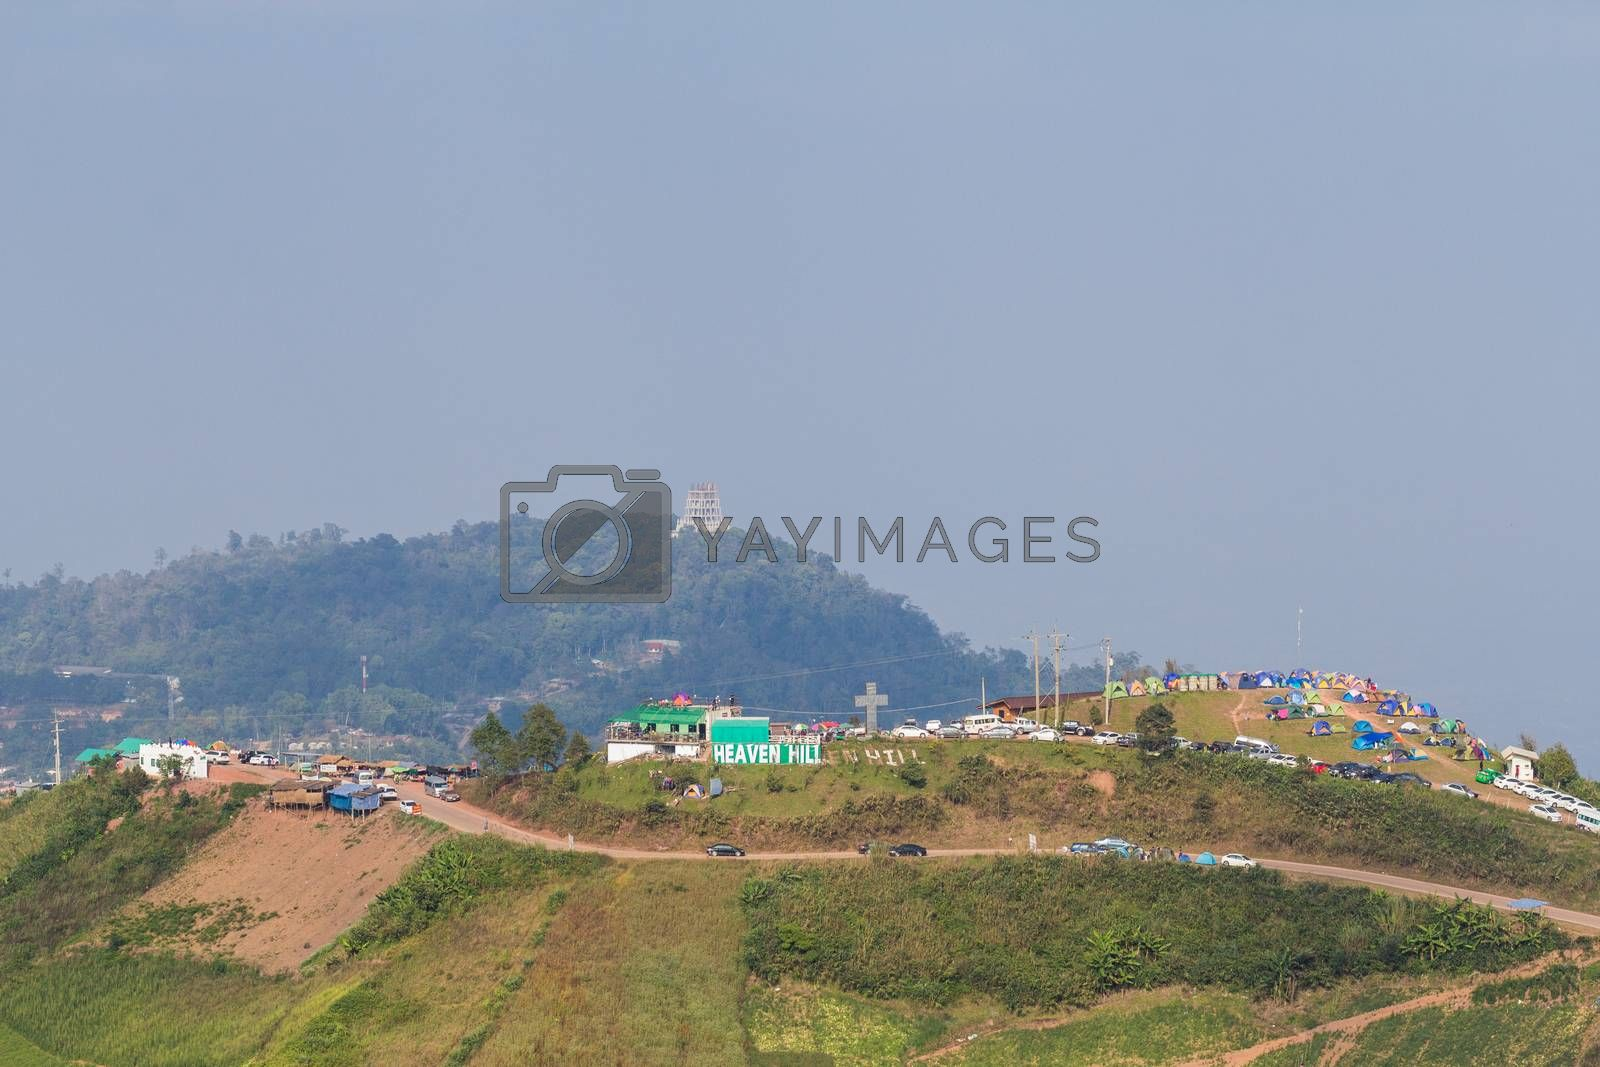 Royalty free image of Landscape at Khaoko, Phetchapun, Thailand by kritsada1992